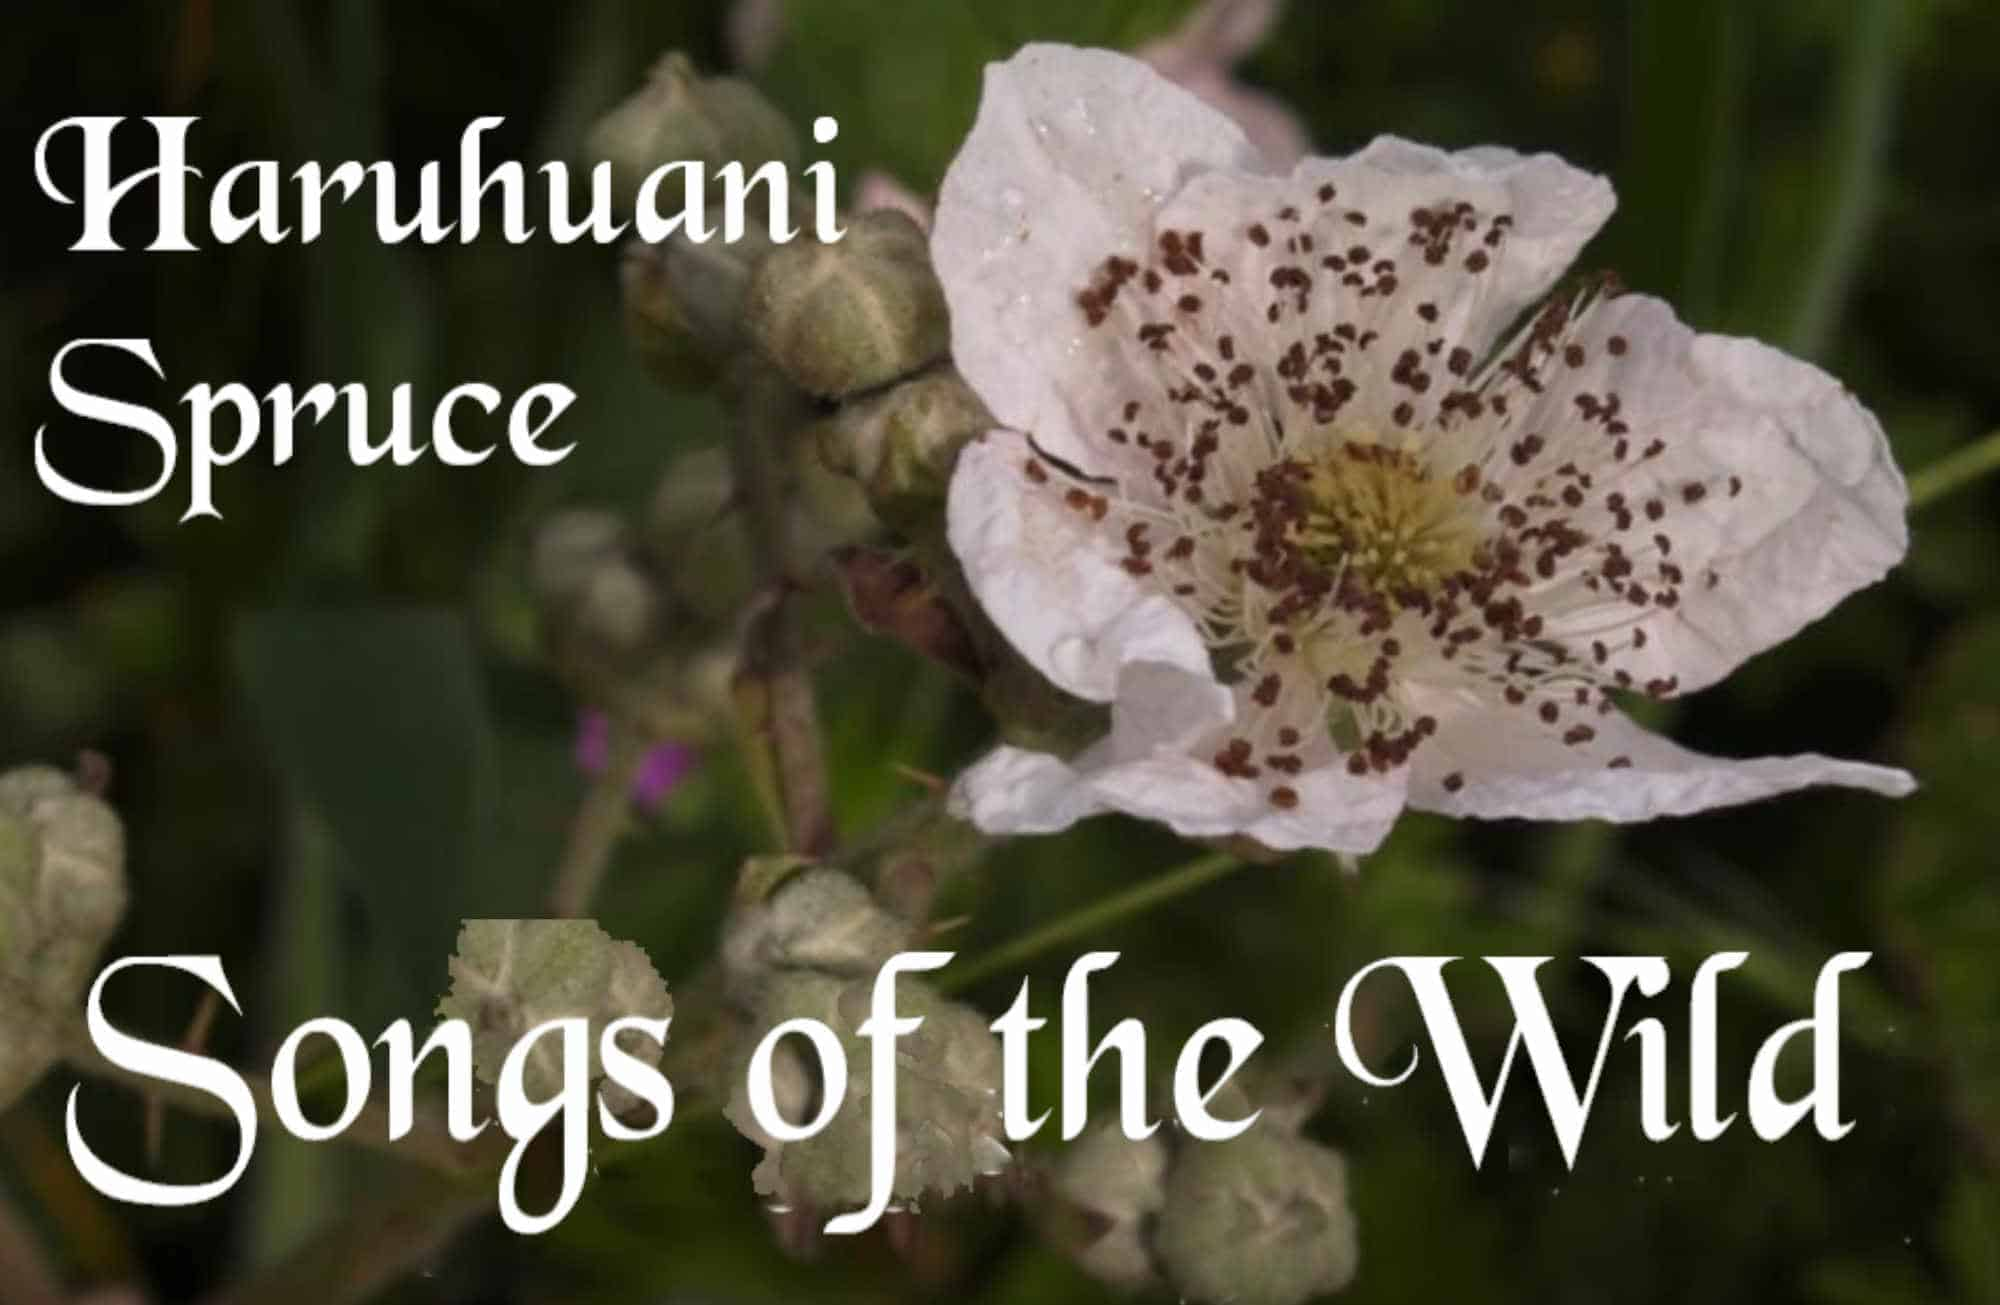 Songs of the Wild: Haruhuani Spruce at Black Cat Books